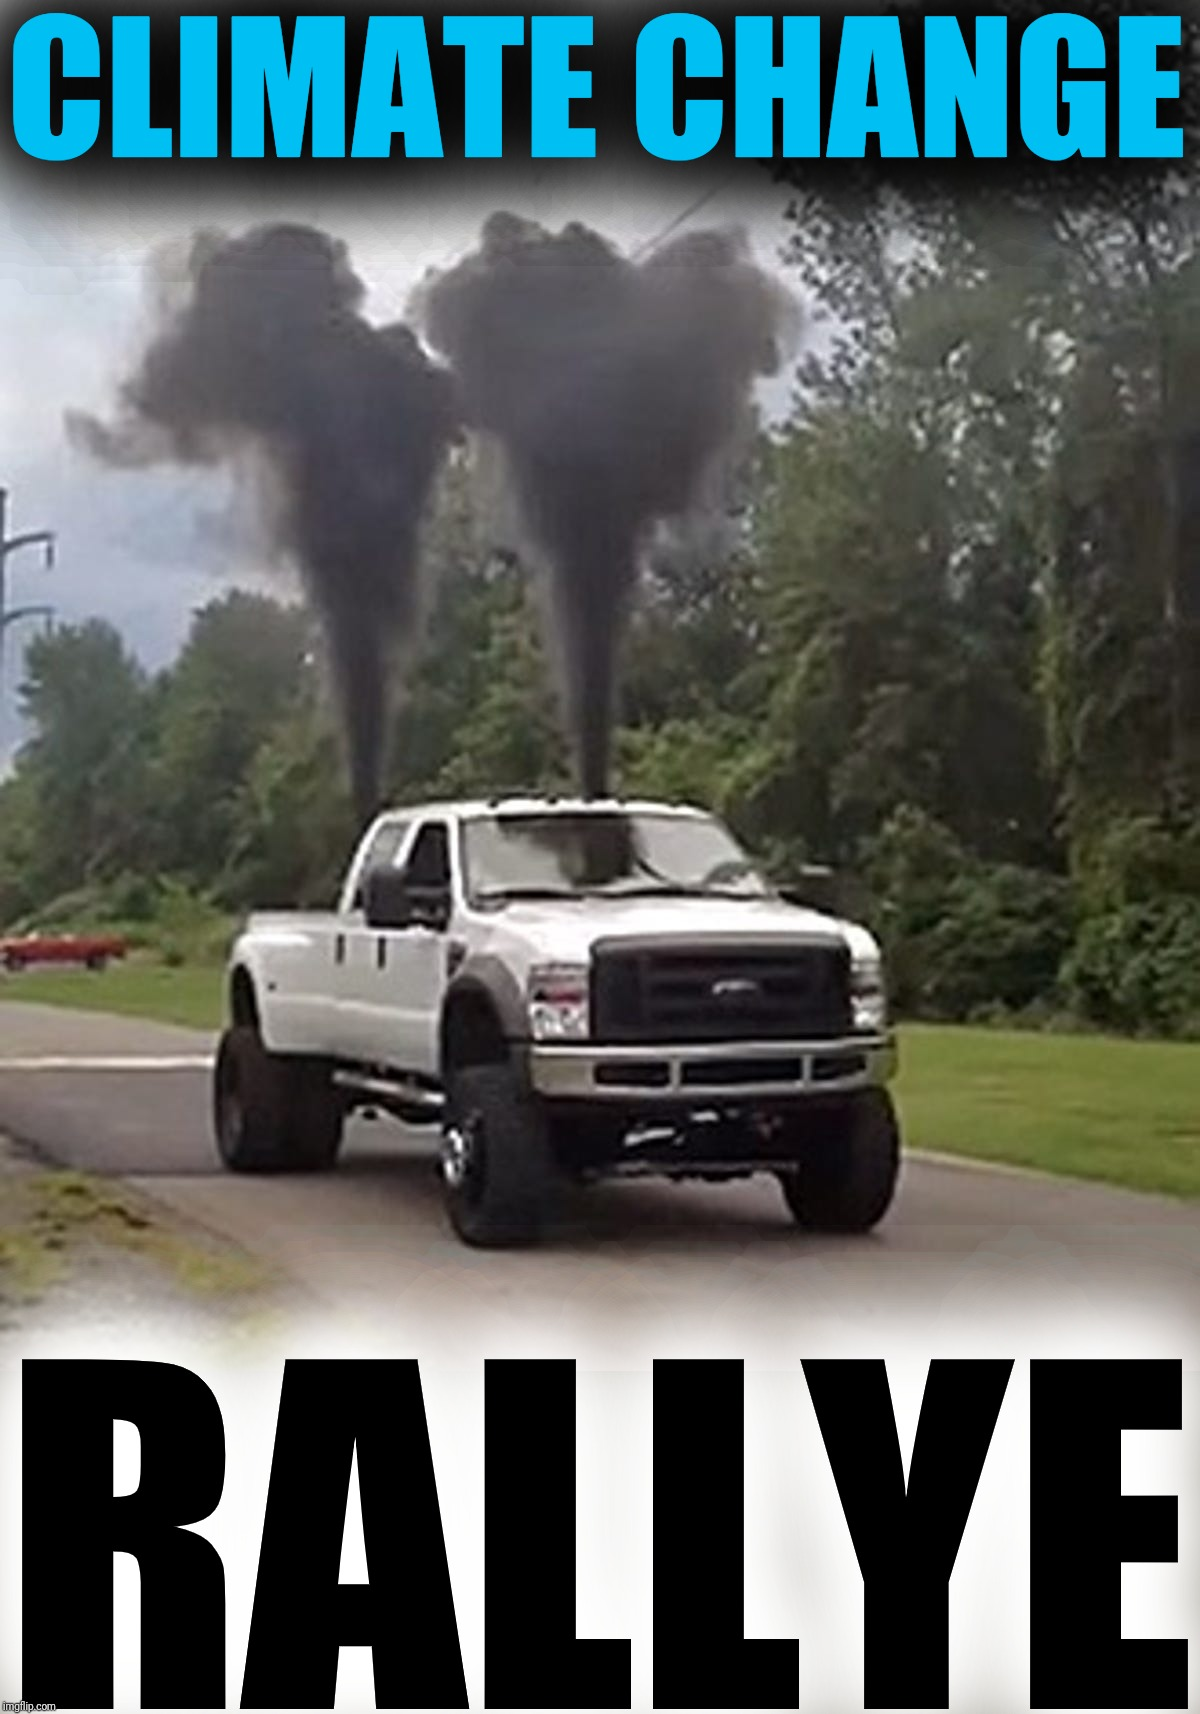 They can't see me rollin |  CLIMATE CHANGE; RALLYE | image tagged in climate change,they see me rolling,politics,truck nuts,rolling coal,particulate matter | made w/ Imgflip meme maker